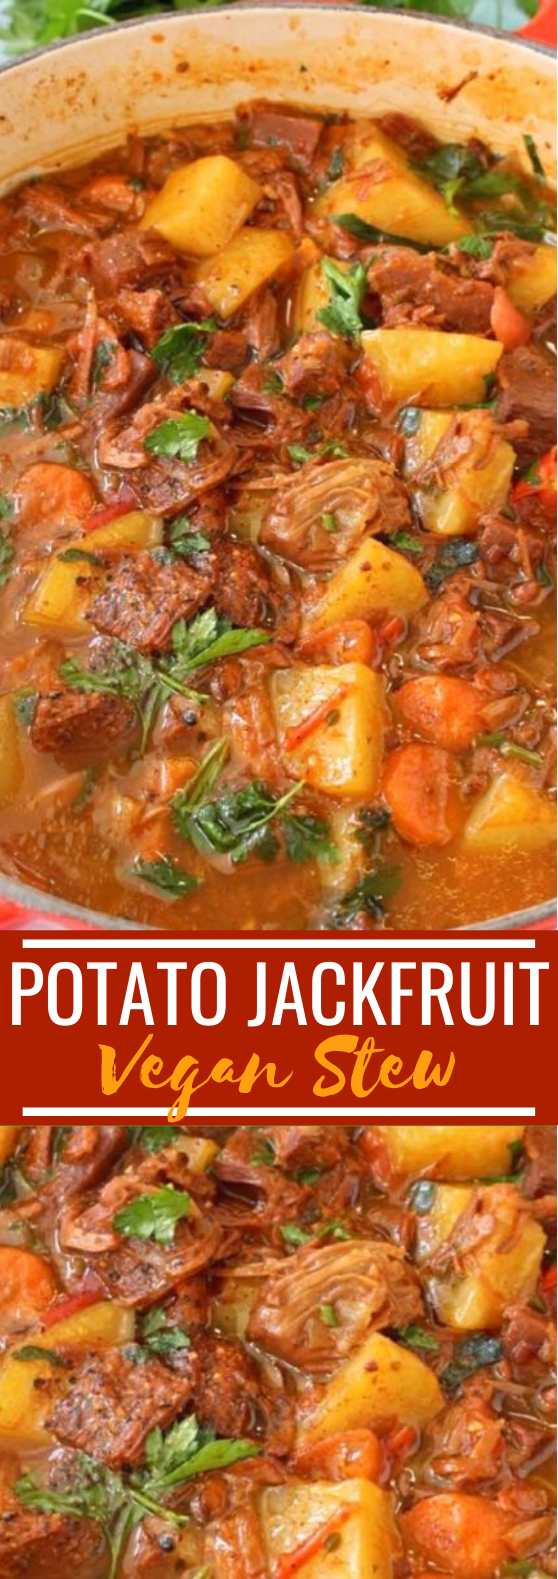 Vegan Potato Jackfruit Stew #vegan #recipes #dinner #soup #stew